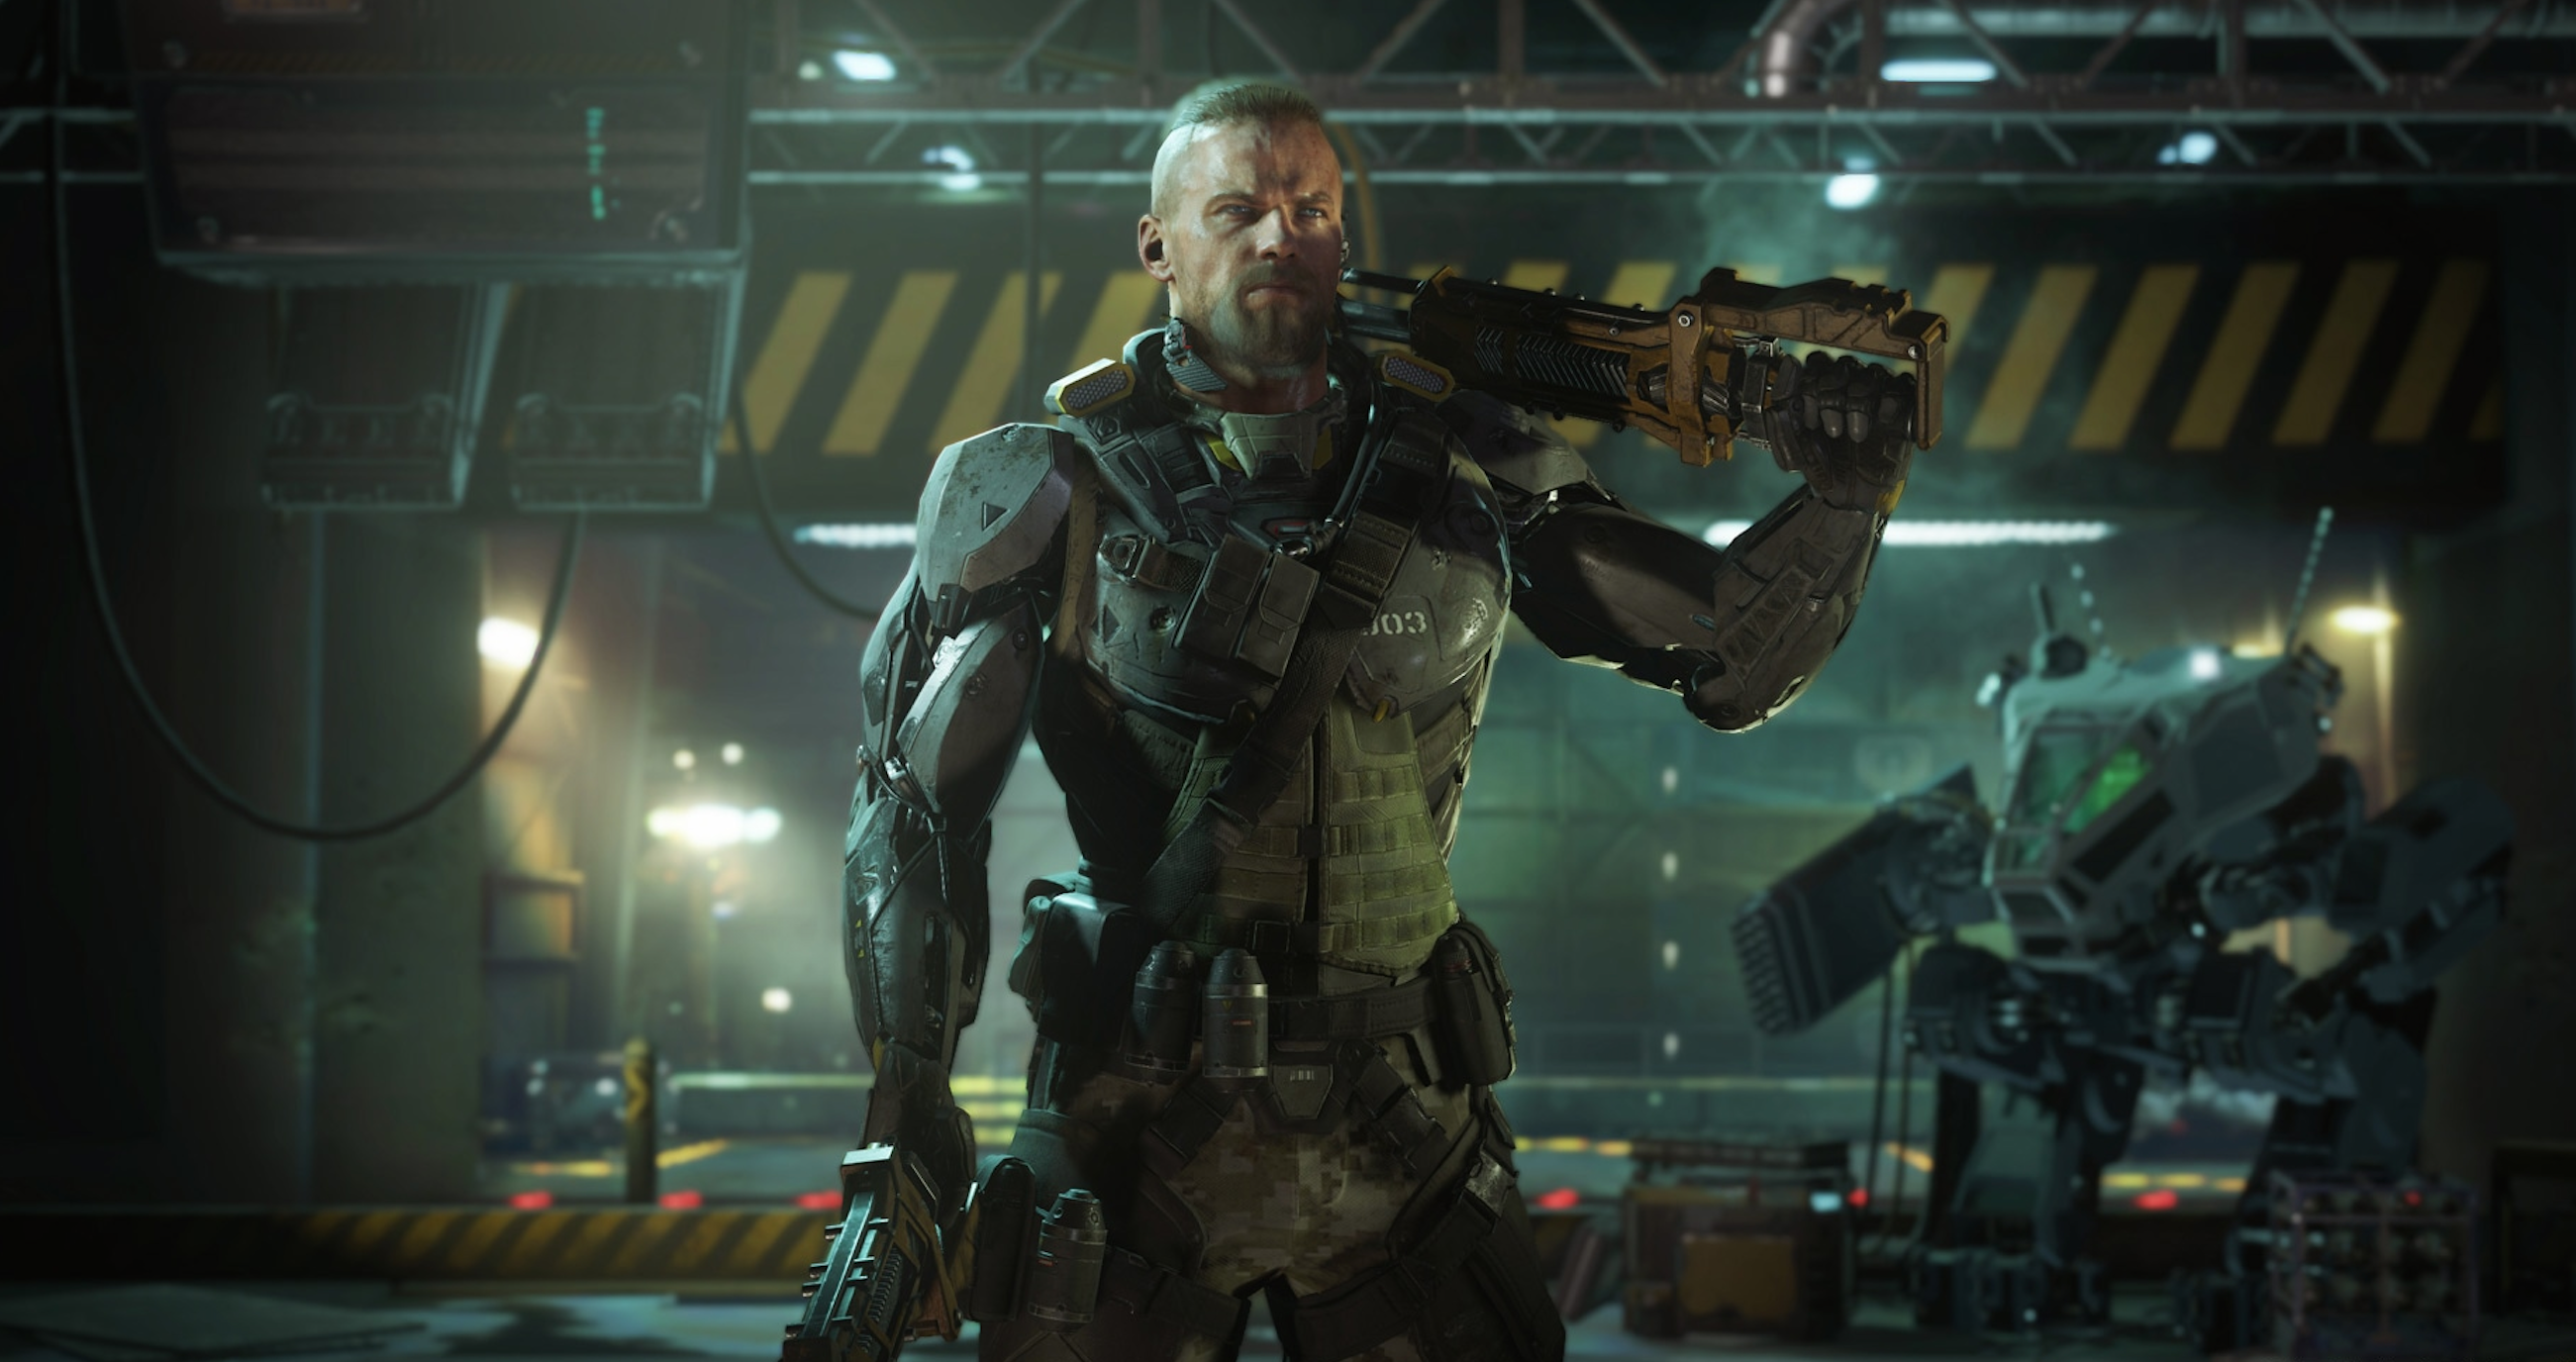 Black Ops 3 PS4 beta is live right now, a bit early